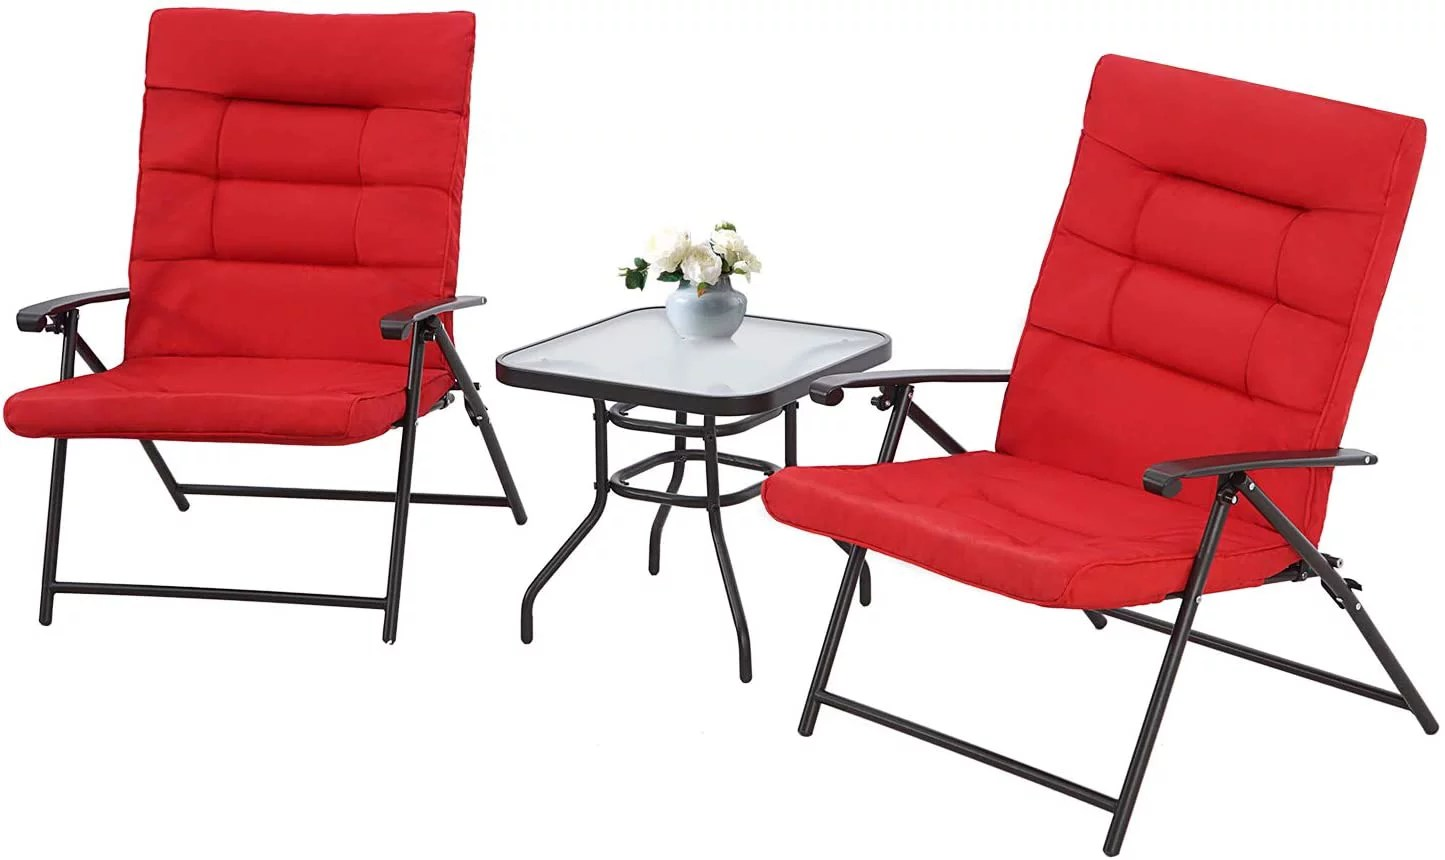 suncrown patio padded folding 3 pieces chair set adjustable reclining outdoor furniture metal sling chair with coffee table red